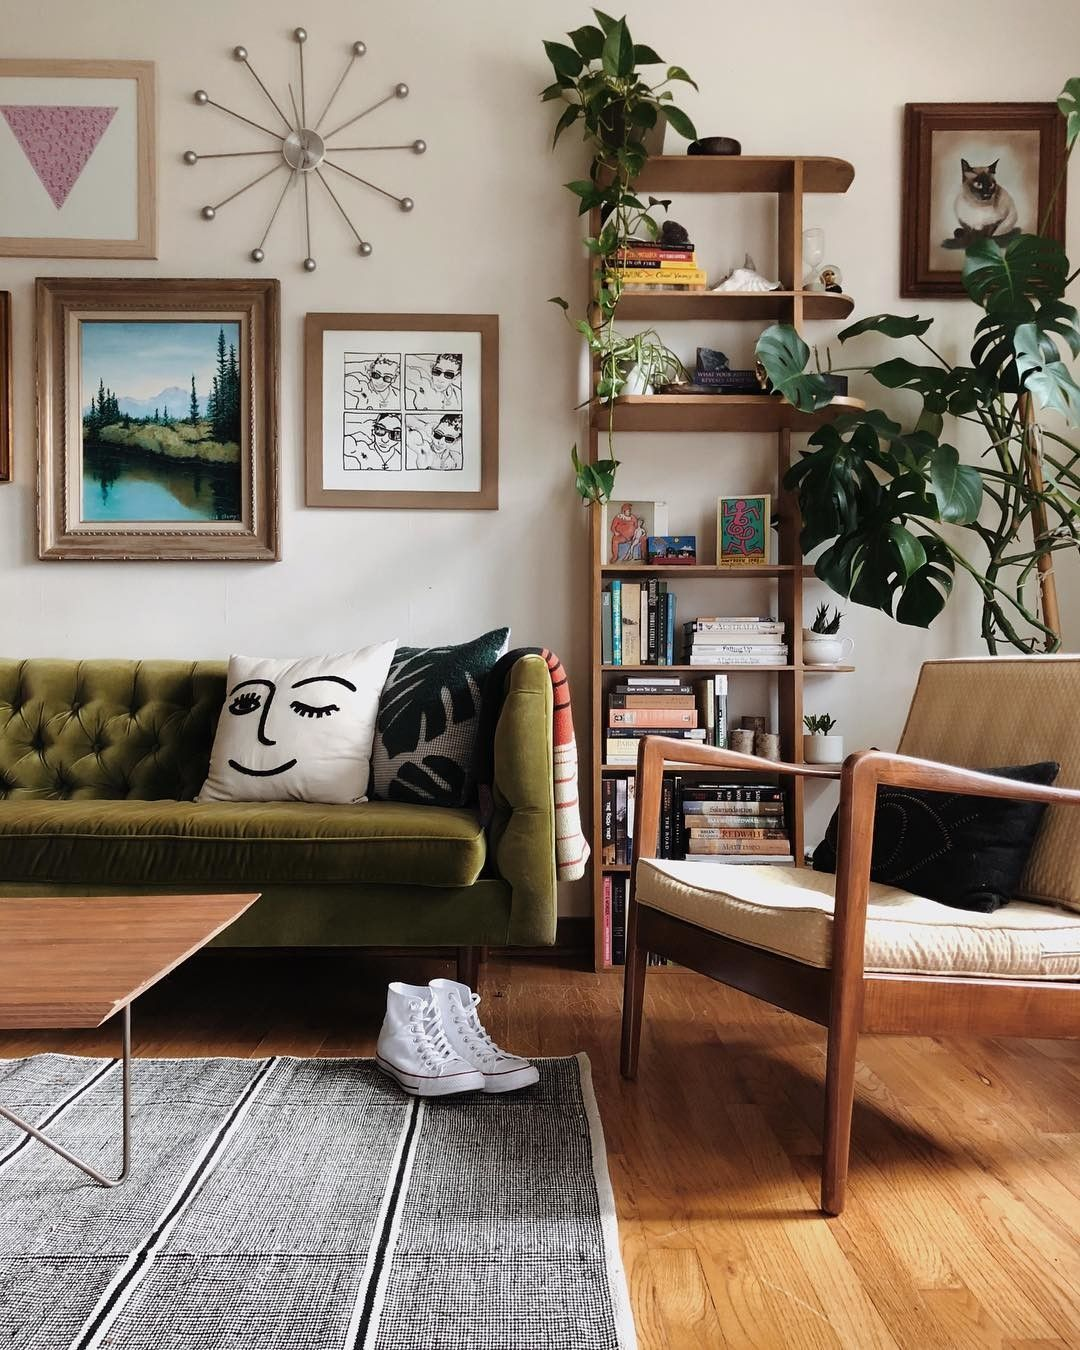 Chester Olive Green Sofa Article Mid Century Modern Living Room Mid Century Living Room Home Living Room